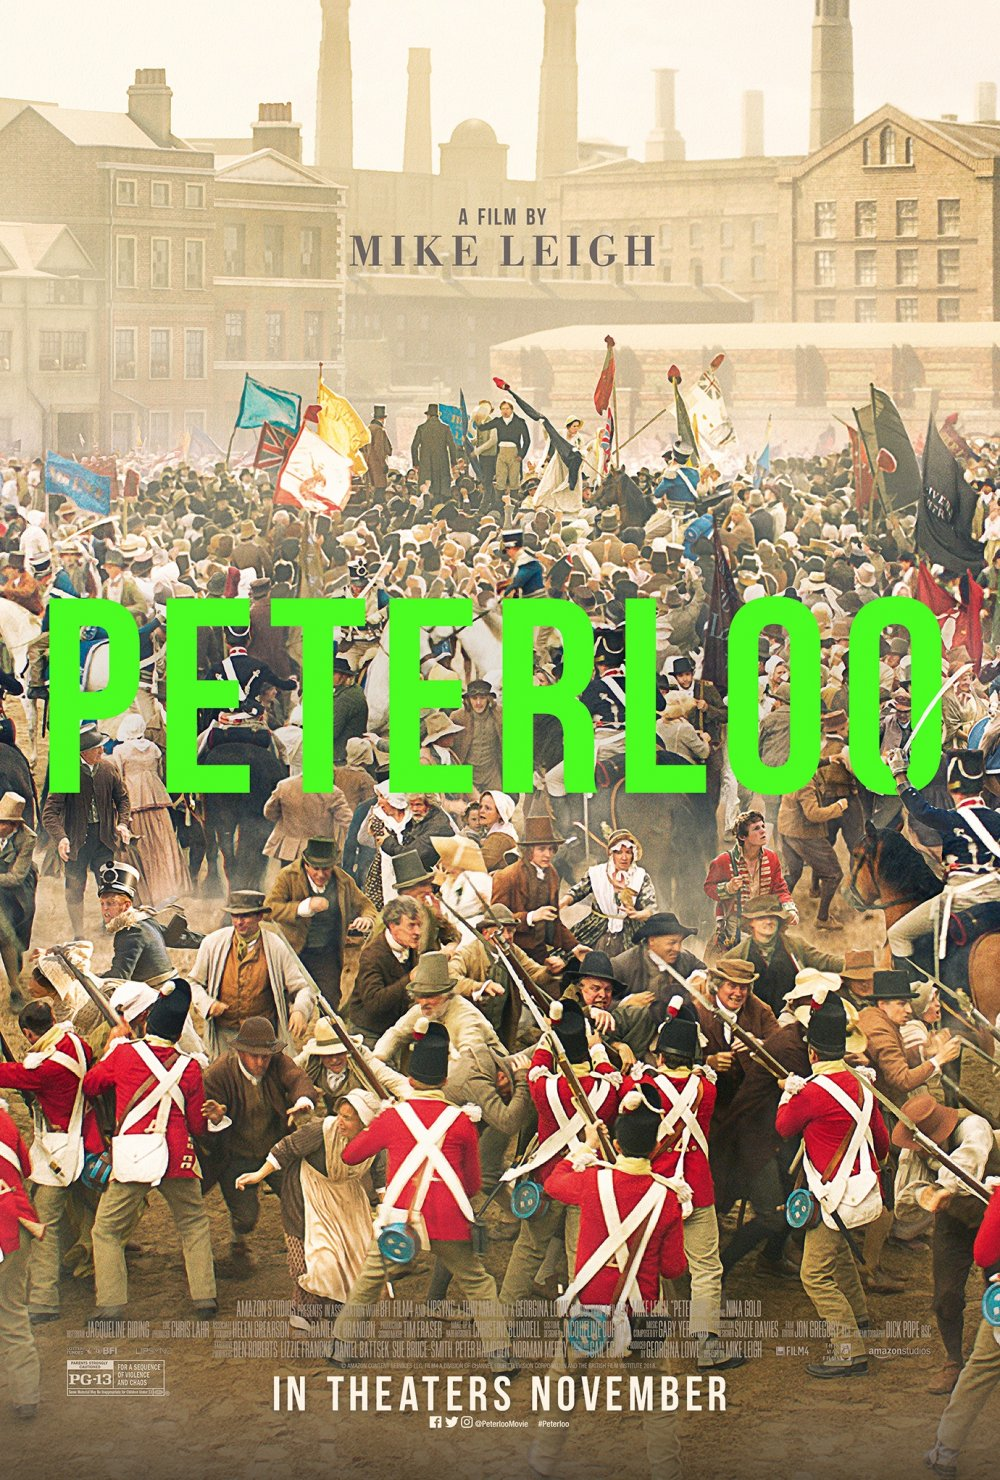 <strong>Peterloo</strong> – Mike Leigh orchestrates a superb ensemble cast in this rousing tale of working class uprising and its violent suppression in Manchester in 1819